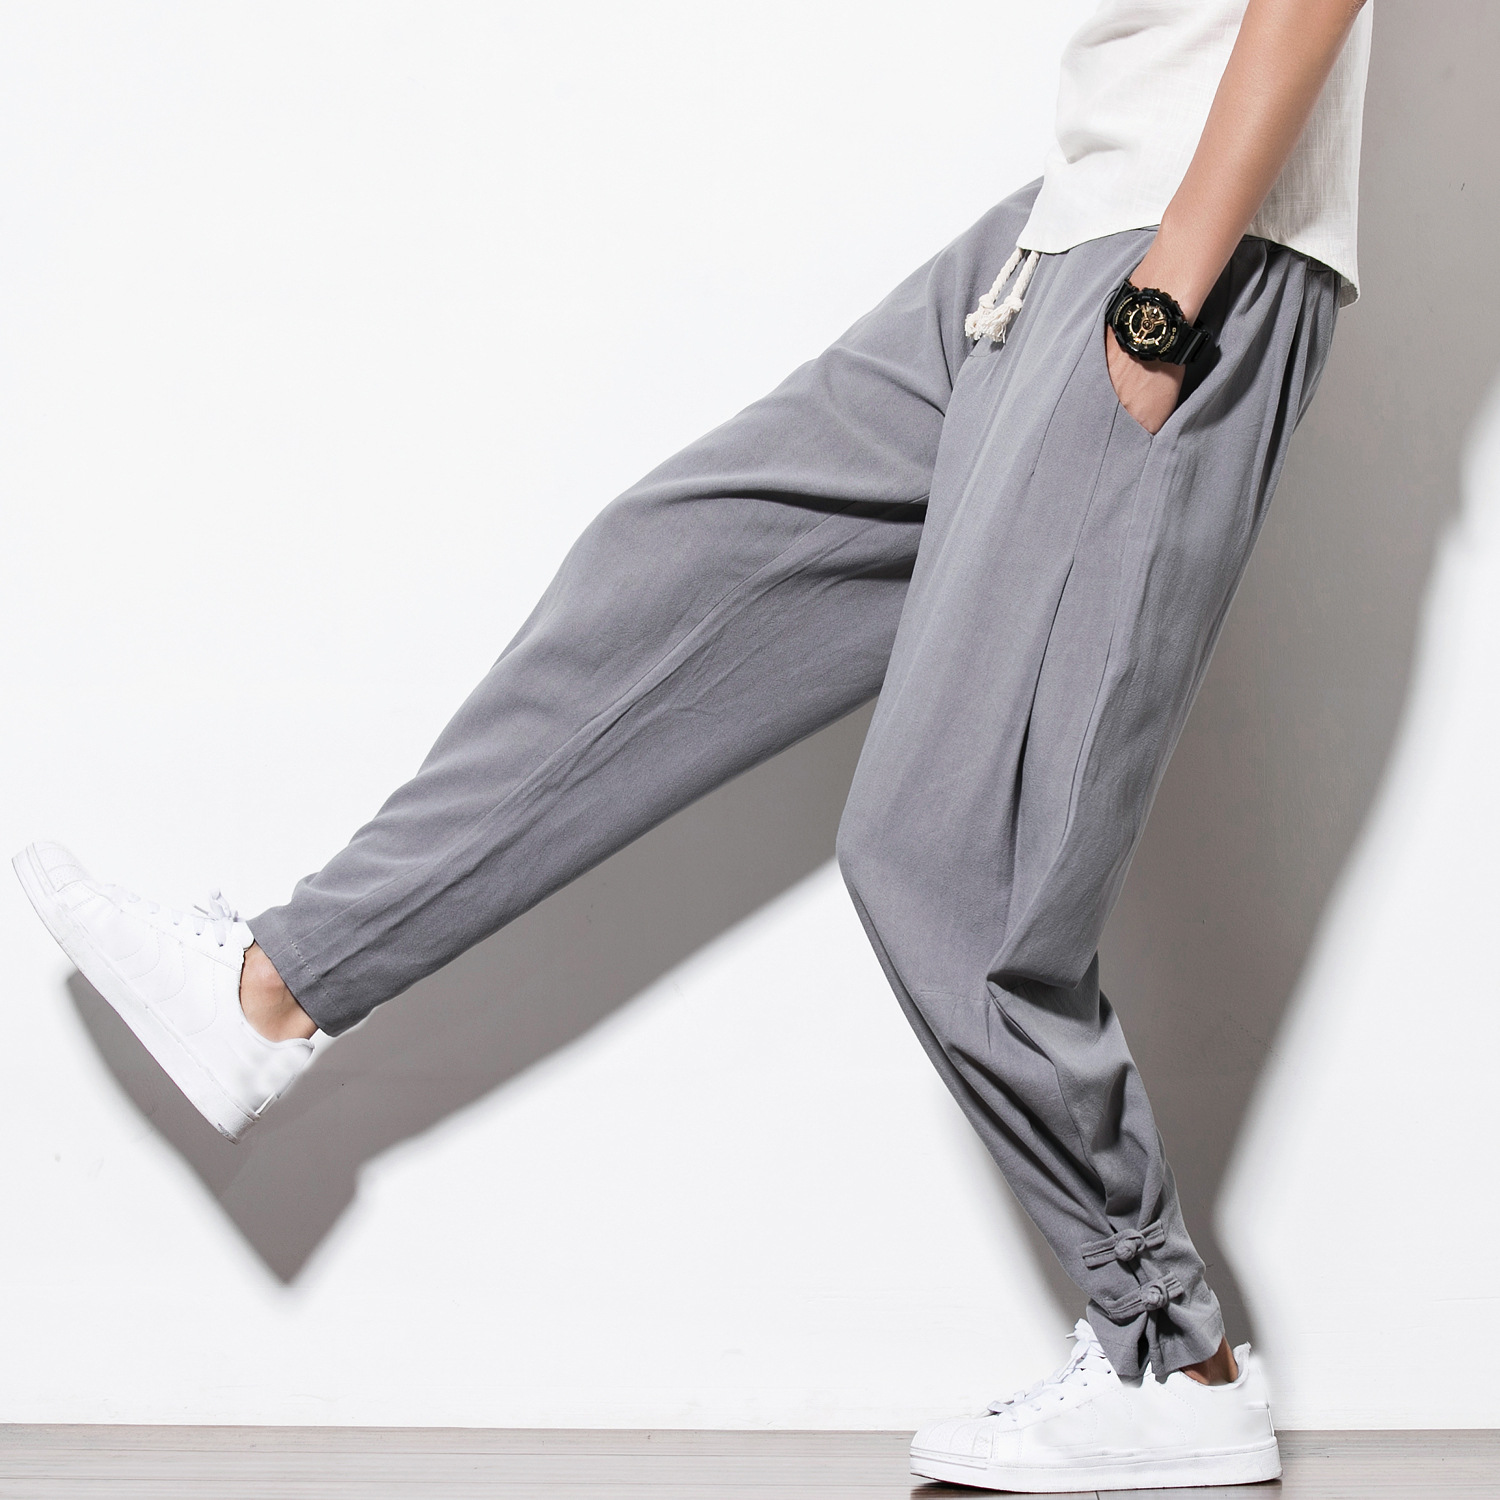 2018 Pepe And Linen Slacks Male Japanese Bottom Plate Buckles Beam Foot Trousers Restoring Ancient Ways Big Yards Long Pants